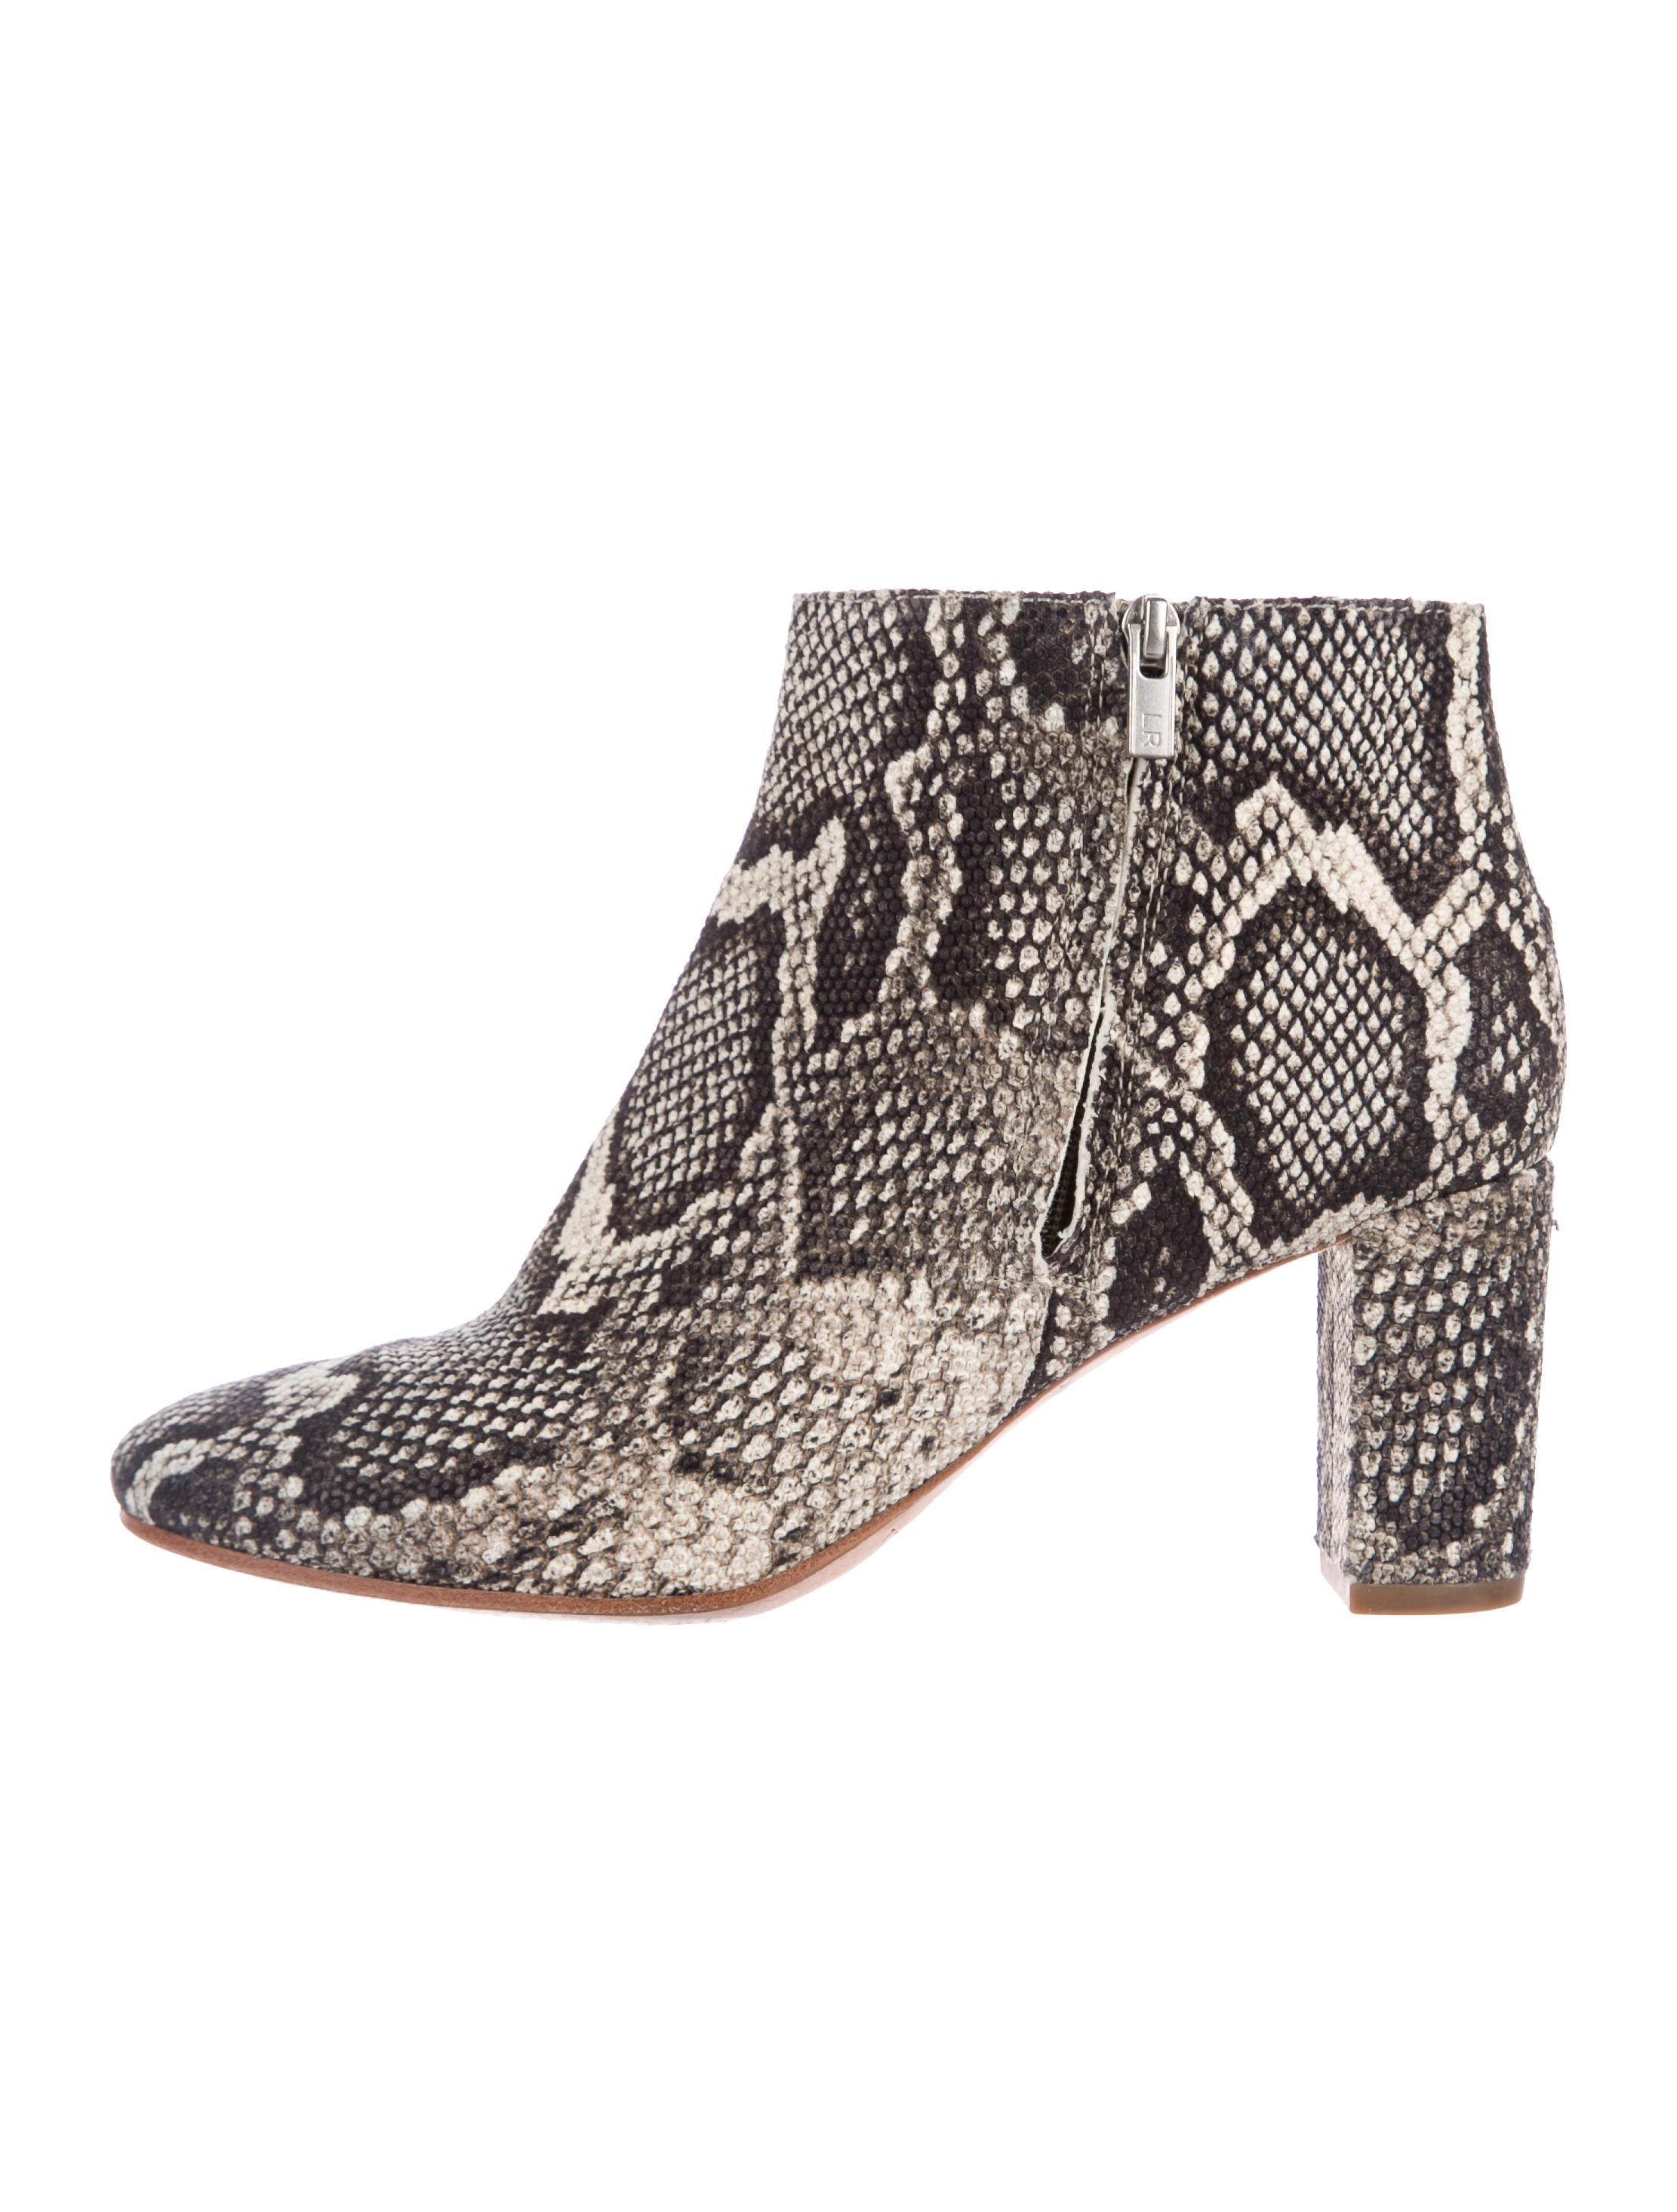 Loeffler Randall Embossed Ankle Boots real online clearance the cheapest extremely for sale clearance low shipping RSfs3Ts